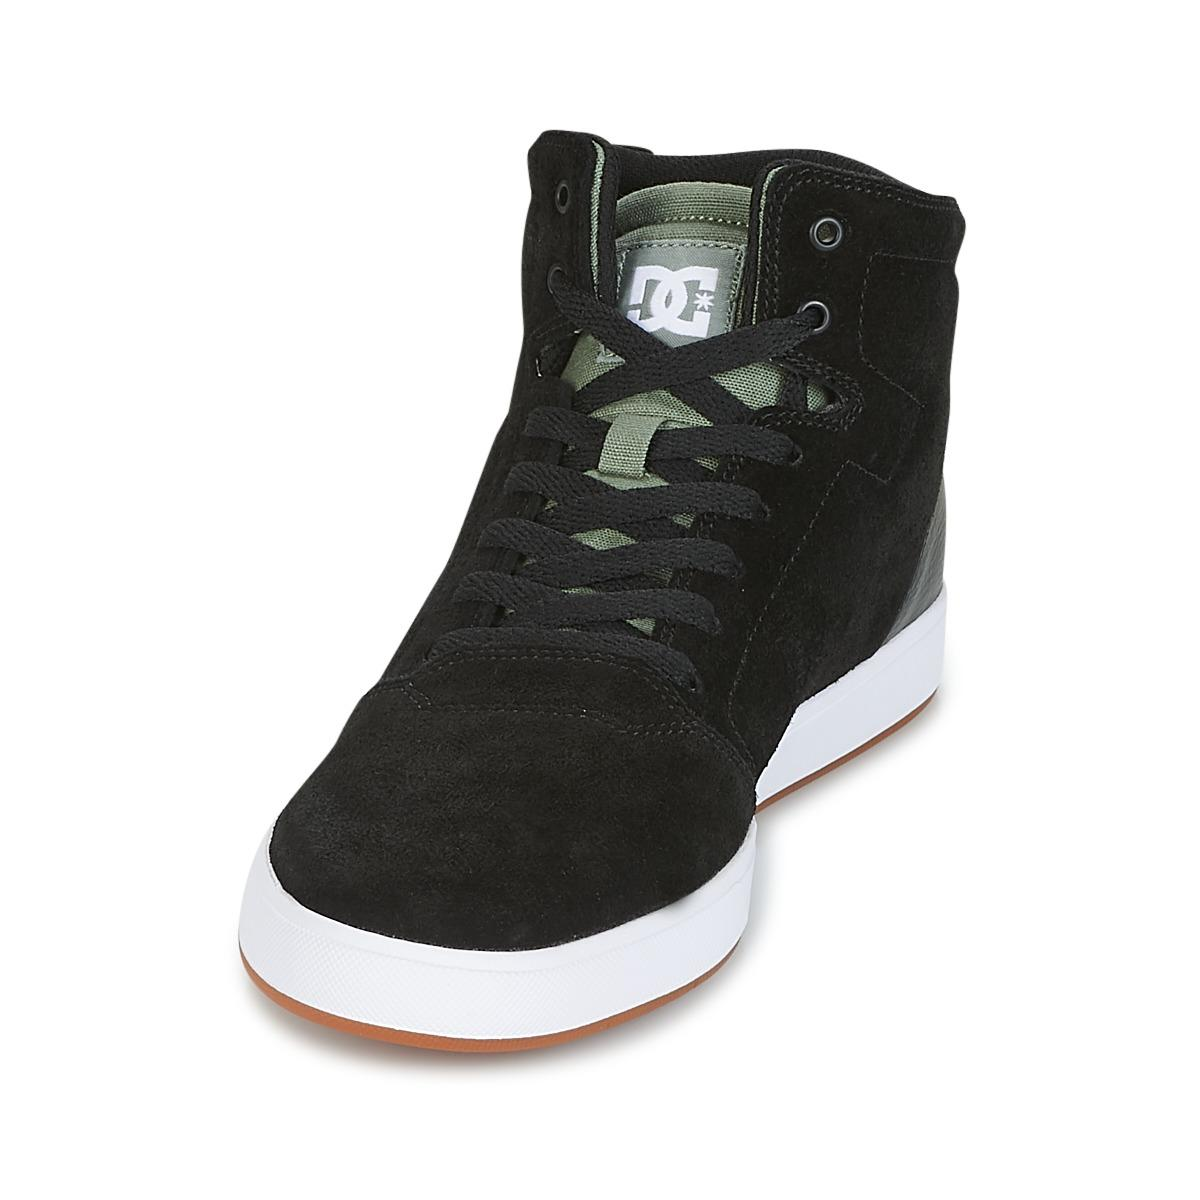 DC Shoes Leather Crisis High M Shoe Bo1 Skate Shoes (trainers) in Black for Men